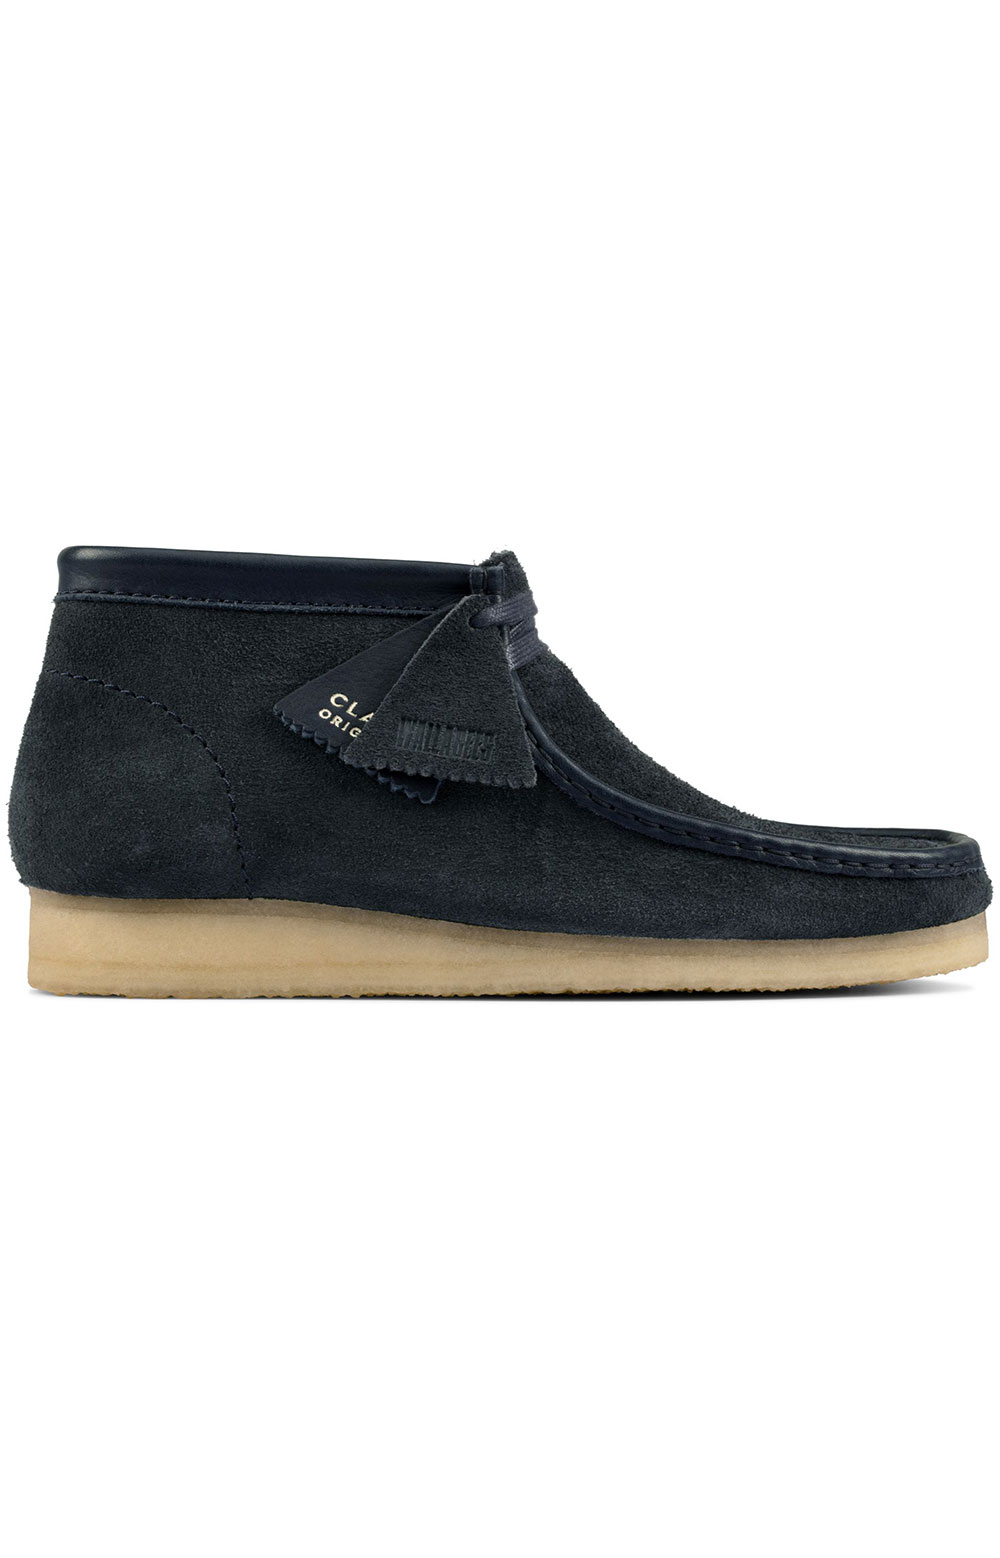 (26155048) Wallabee Boots - Navy Hairy Suede